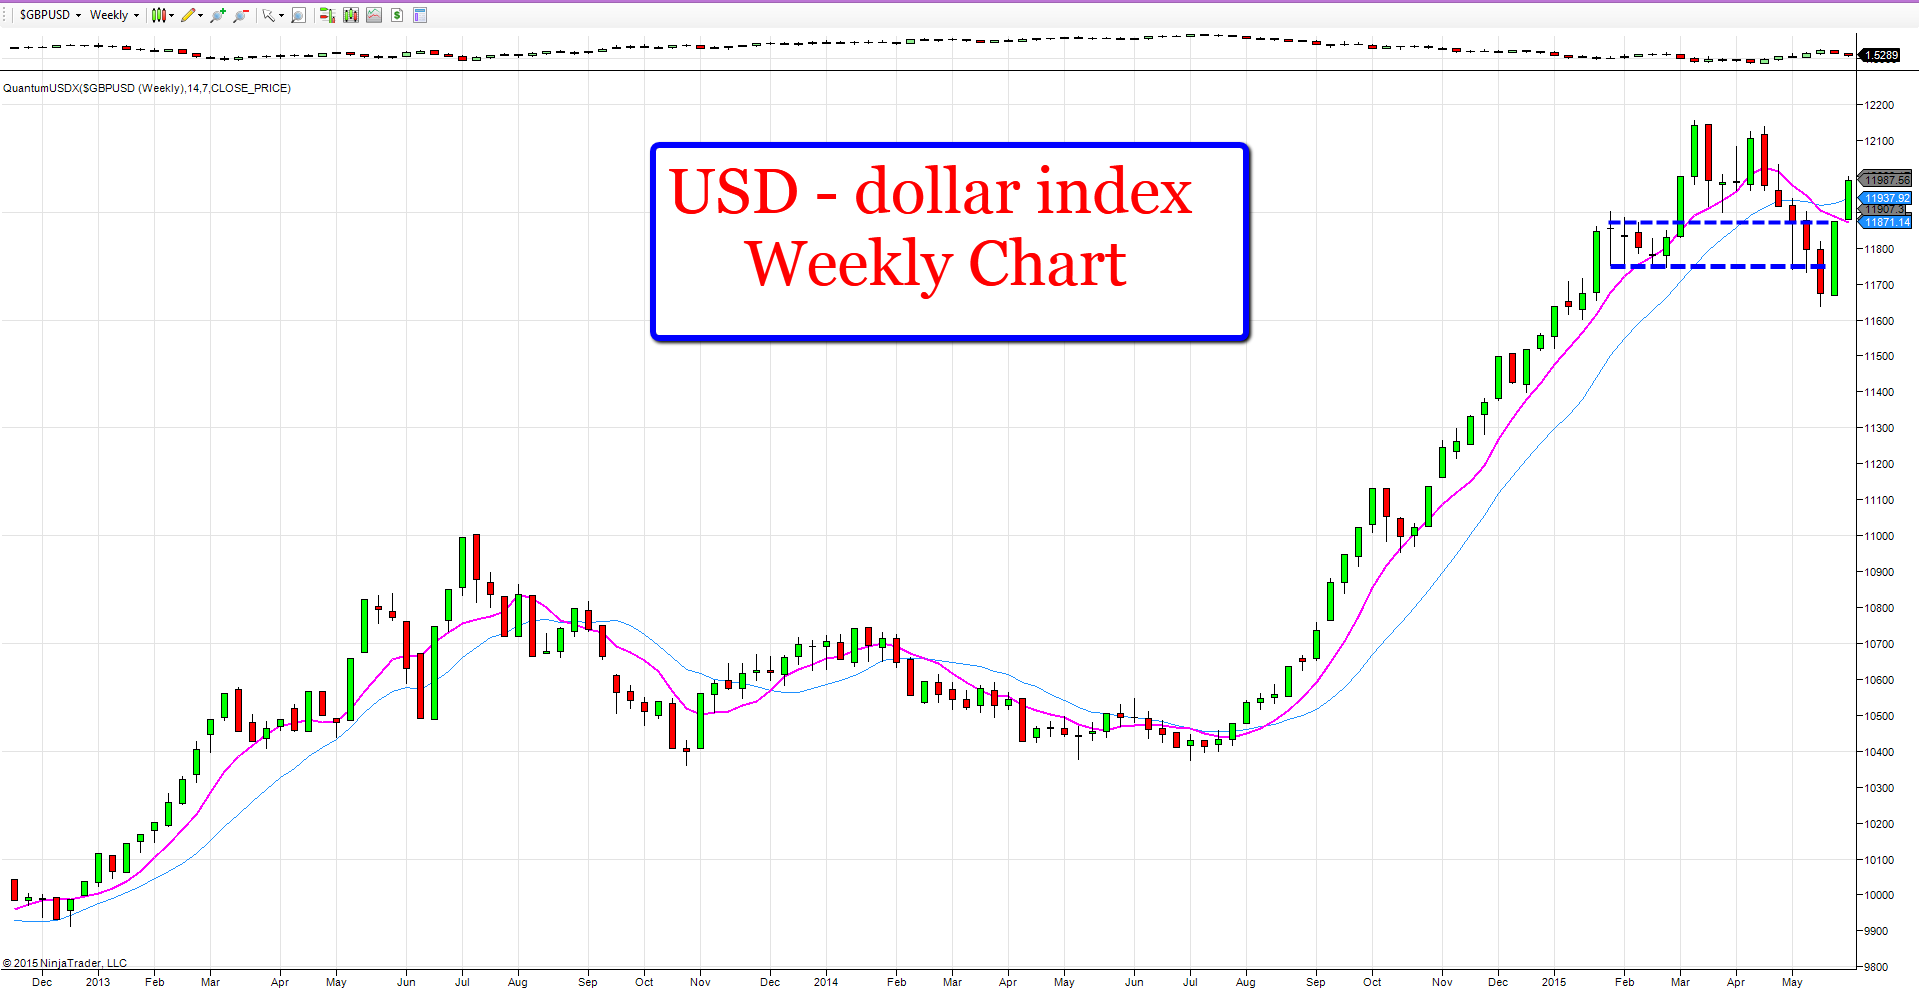 US dollar index - weekly chart